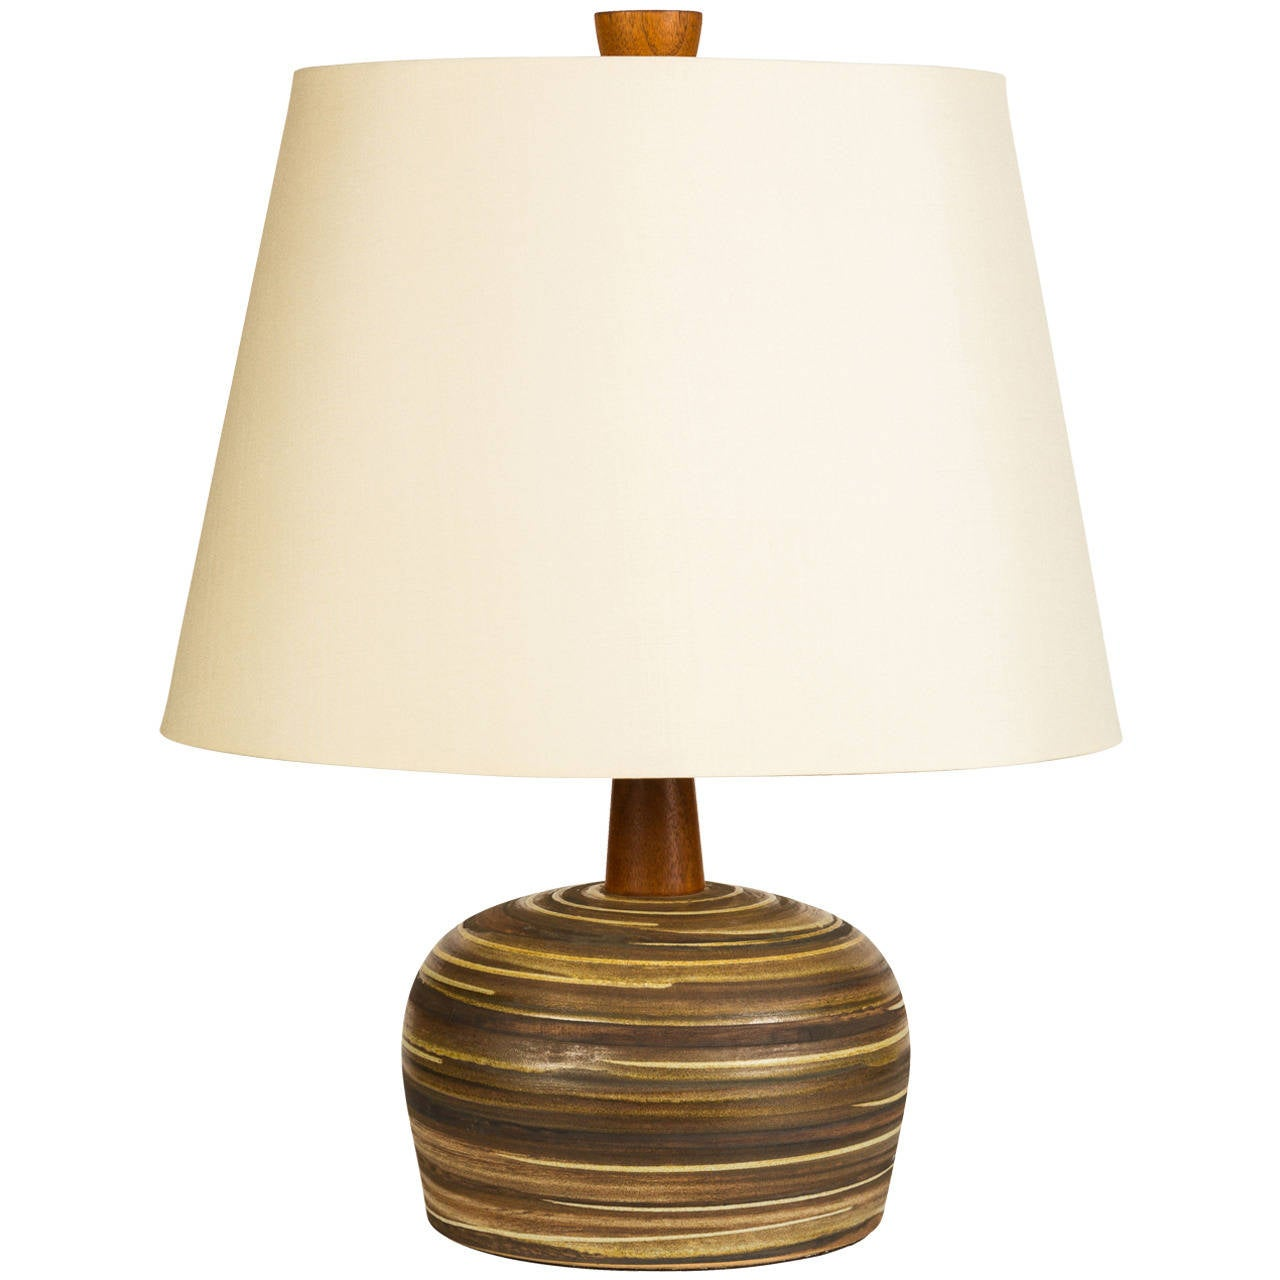 Martz ceramic table lamp at 1stdibs for Ceramic table lamps